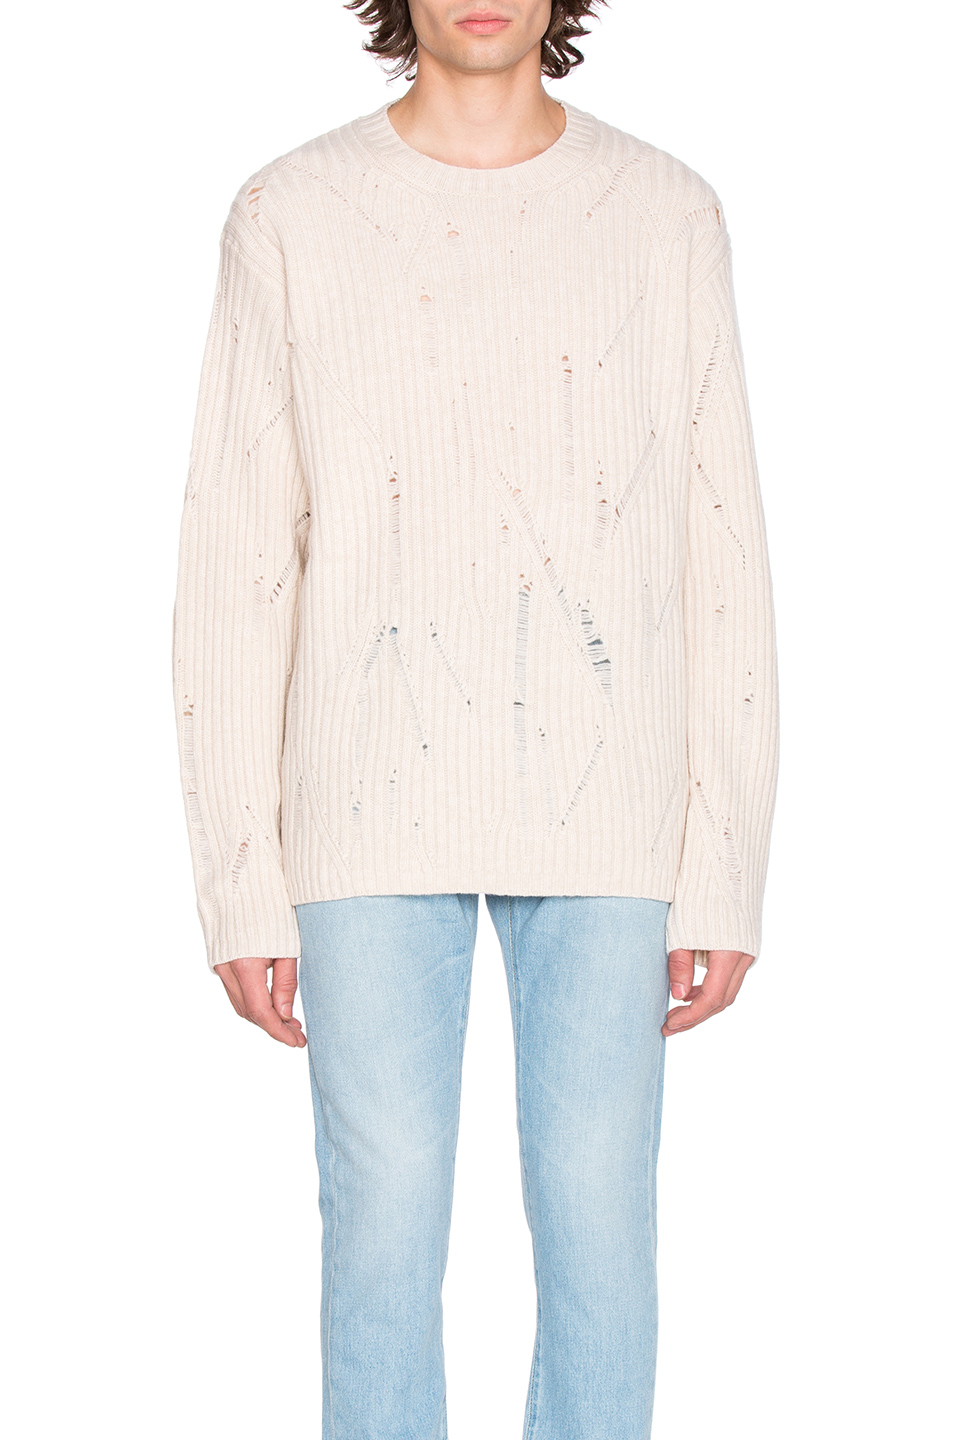 Maison Margiela Rib Sweater with Interruption in White